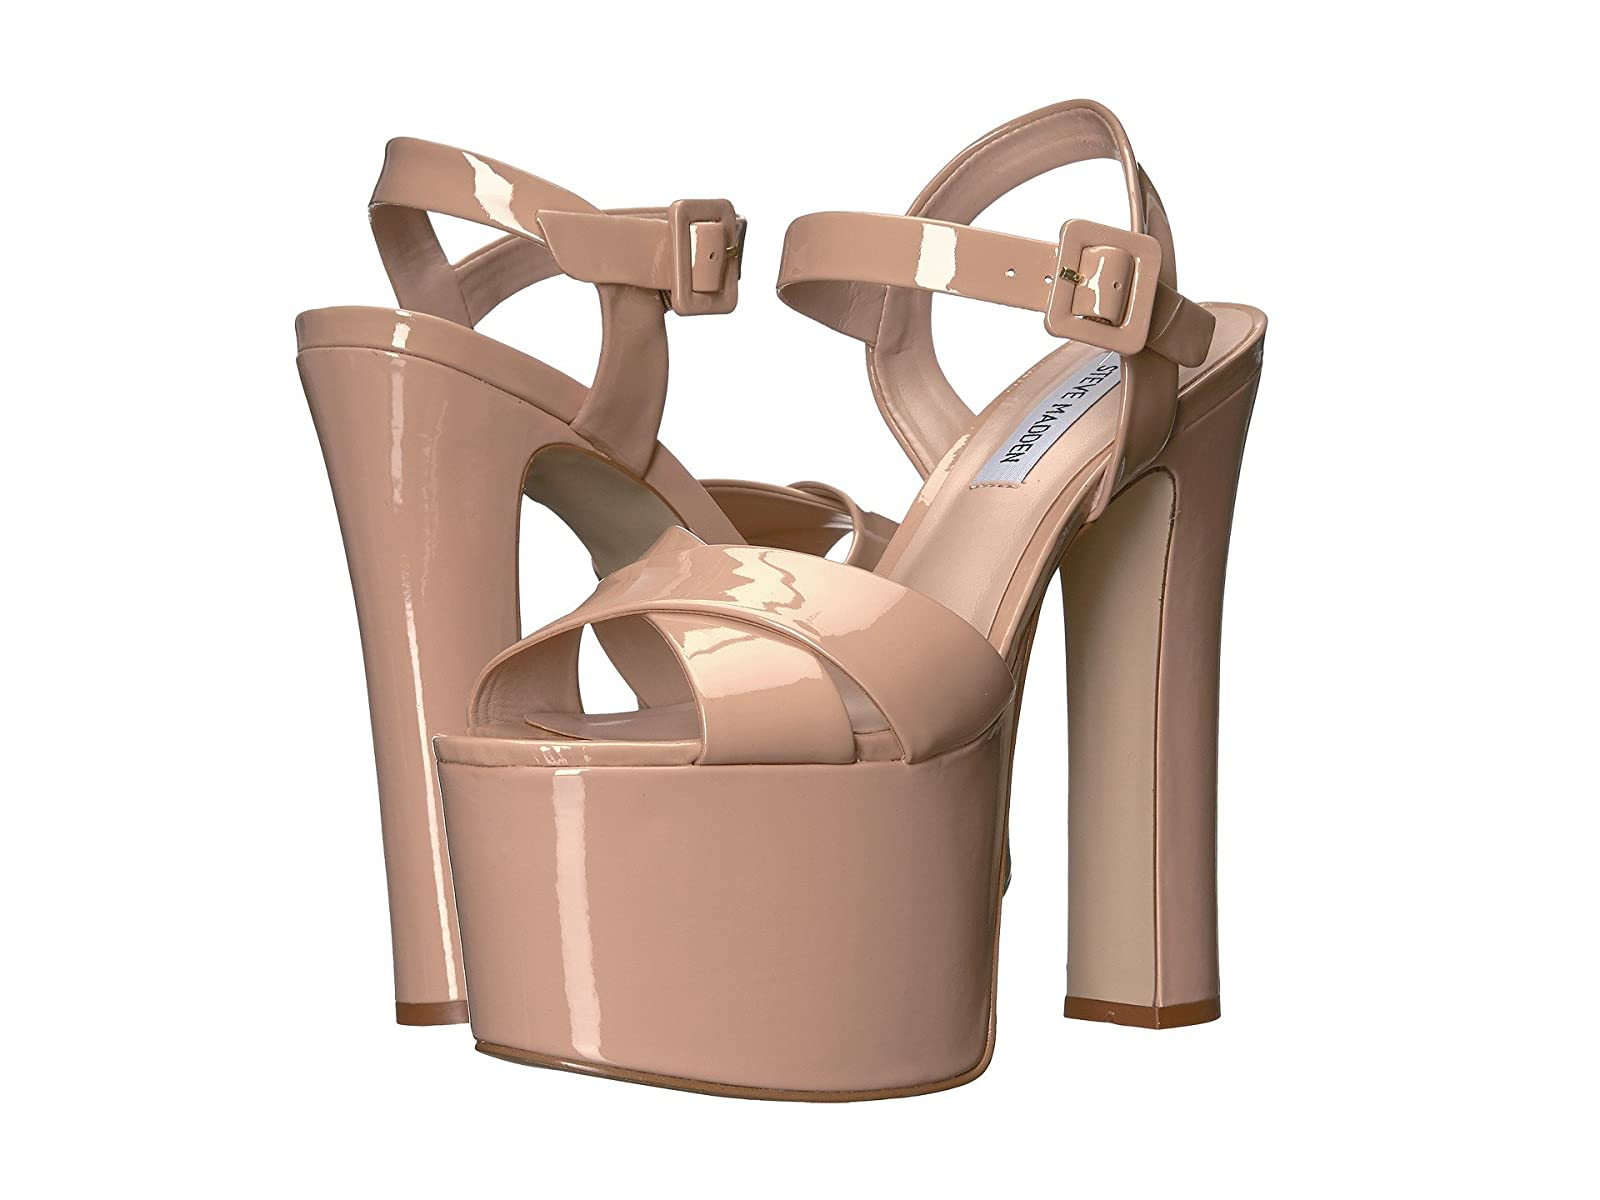 Steve Madden TammyCheap and distinctive eye-catching shoes